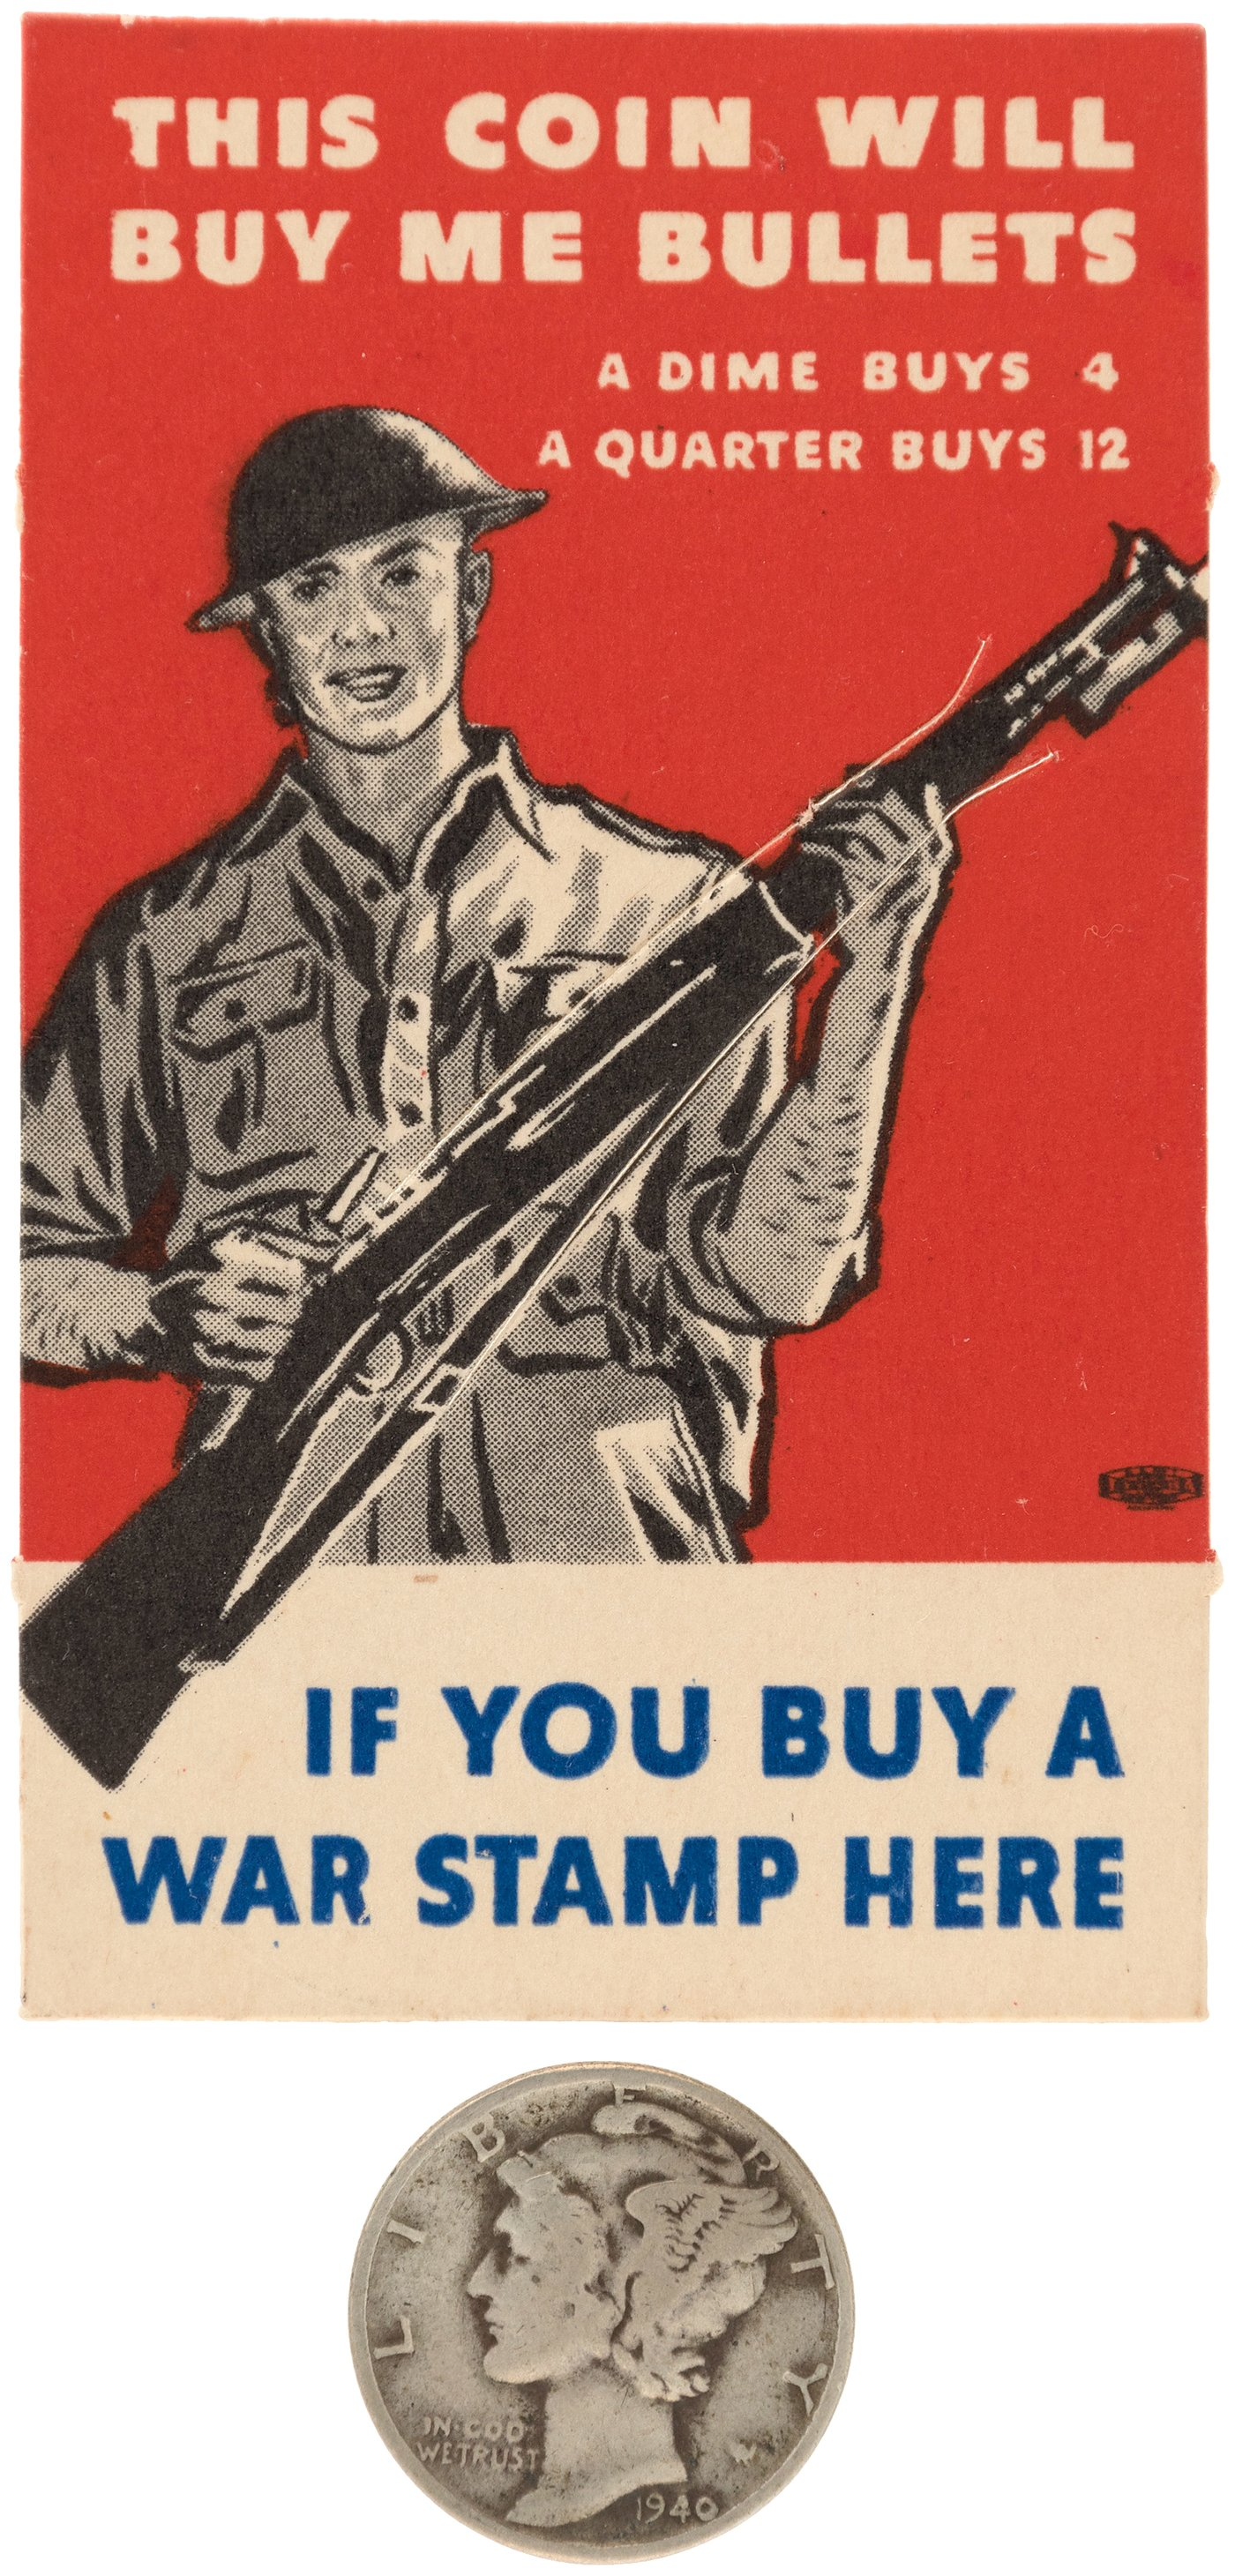 Hake's - WORLD WAR II - WAR BONDS BUY BULLETS VICTORY POSTER &